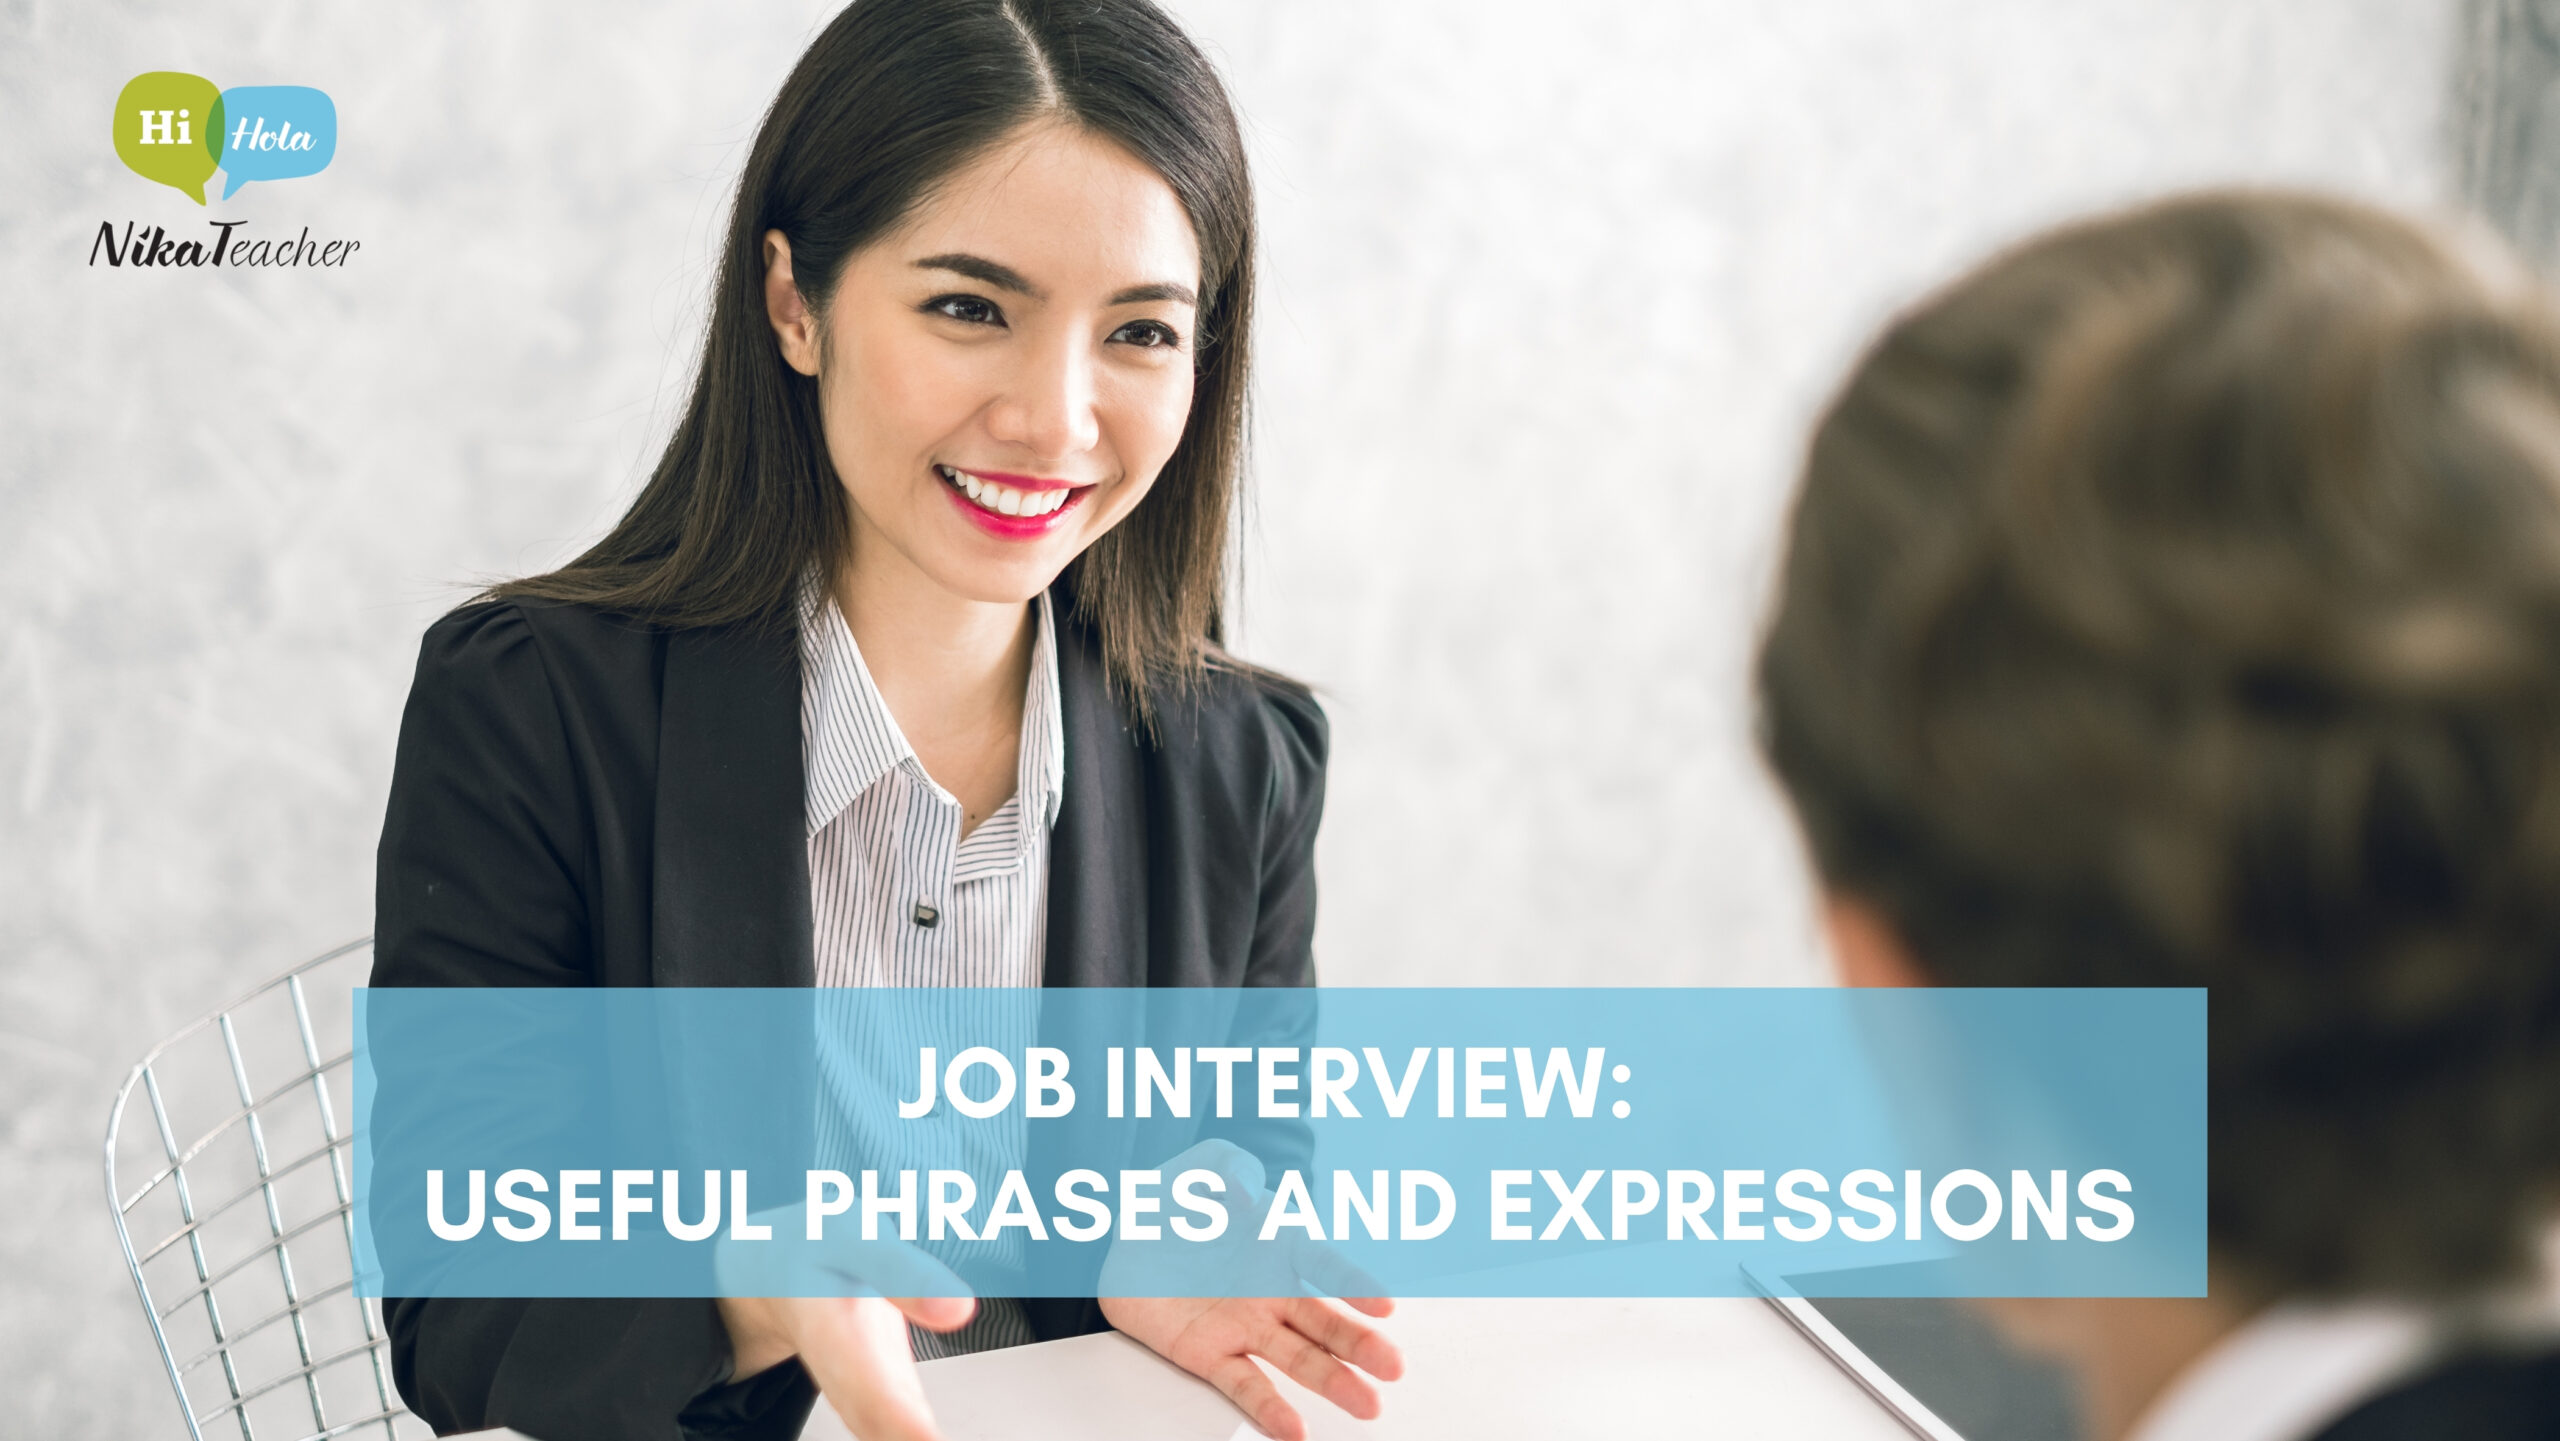 Job Interview: Useful phrases and expressions